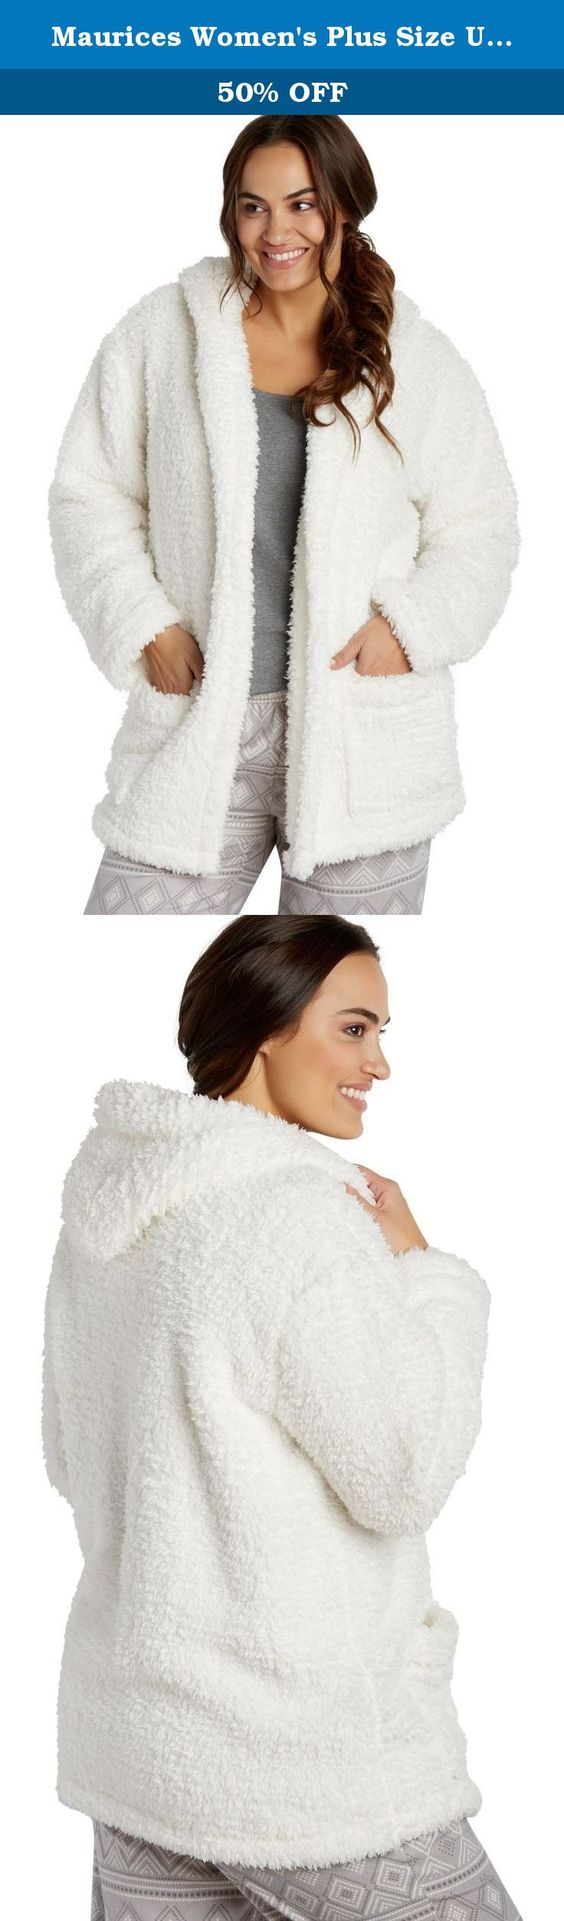 Maurices Women's Plus Size Ultra Soft Faux Sherpa Sleep Robe One Size Soft White. Plus size ultra soft faux sherpa sleep robe. Fabric and care: imported 100% polyester machine wash.